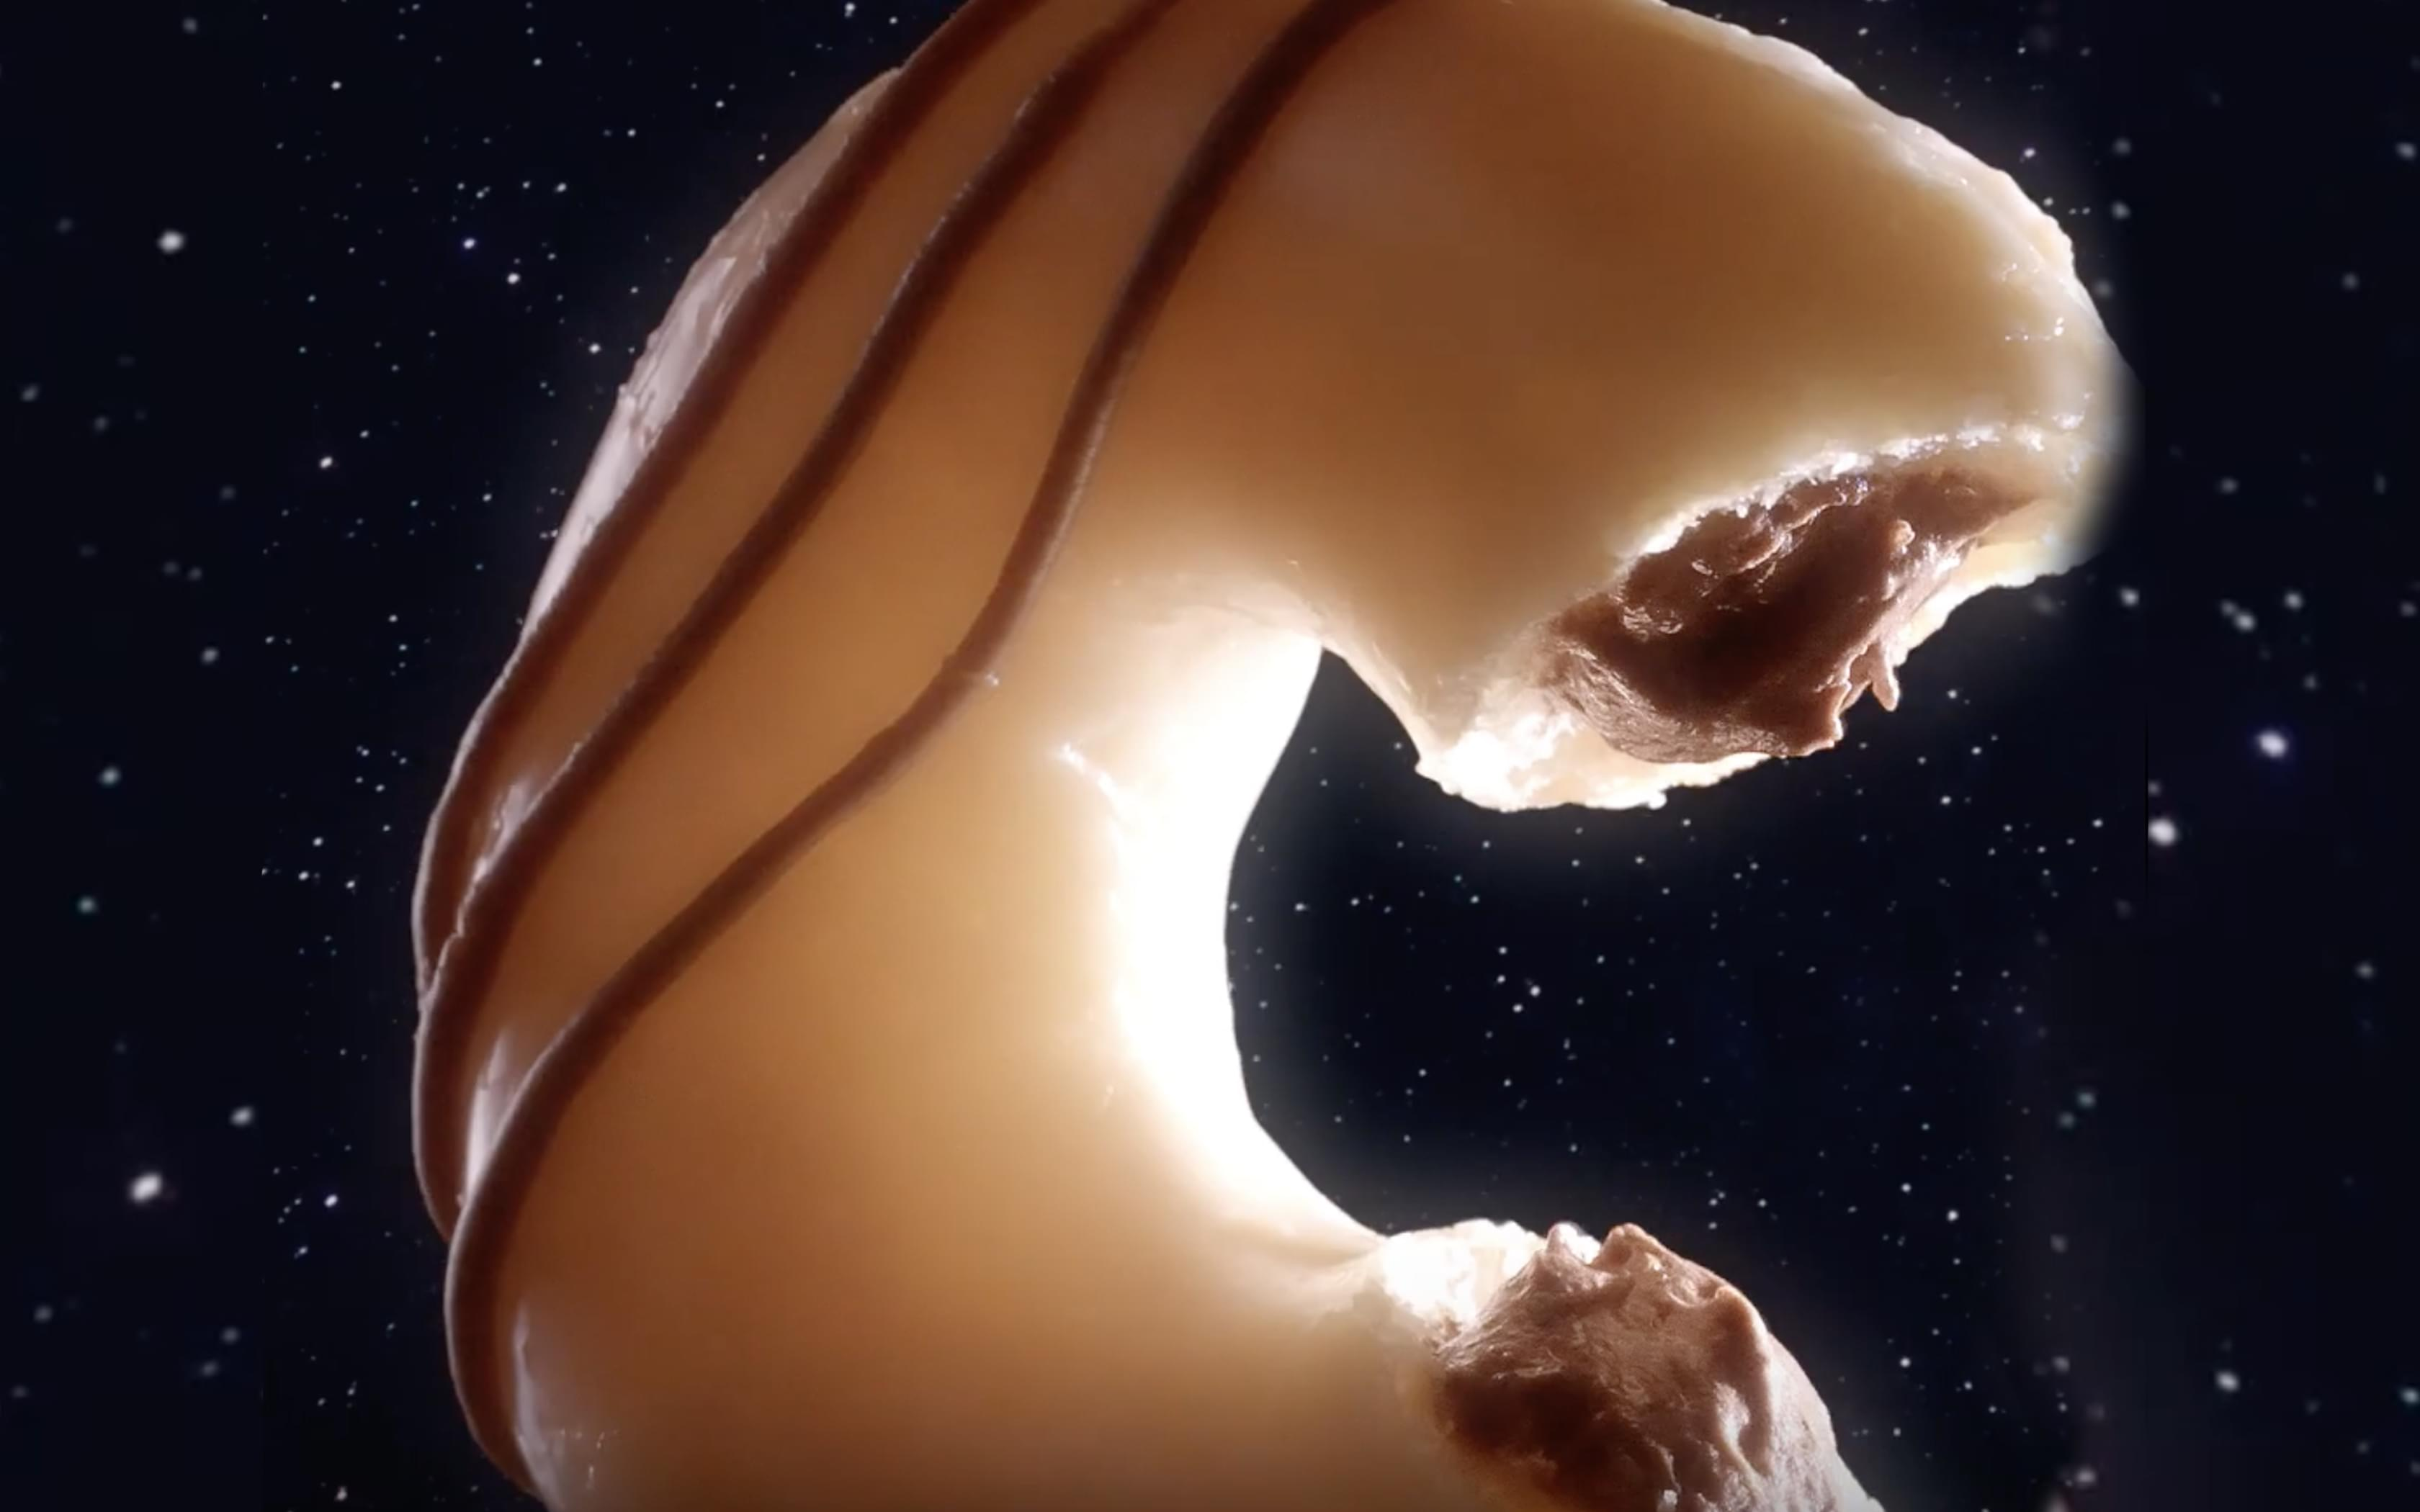 Krispy Kreme made a kreme-filled original glazed donut to celebrate The Moon Landing's 50th anniversary